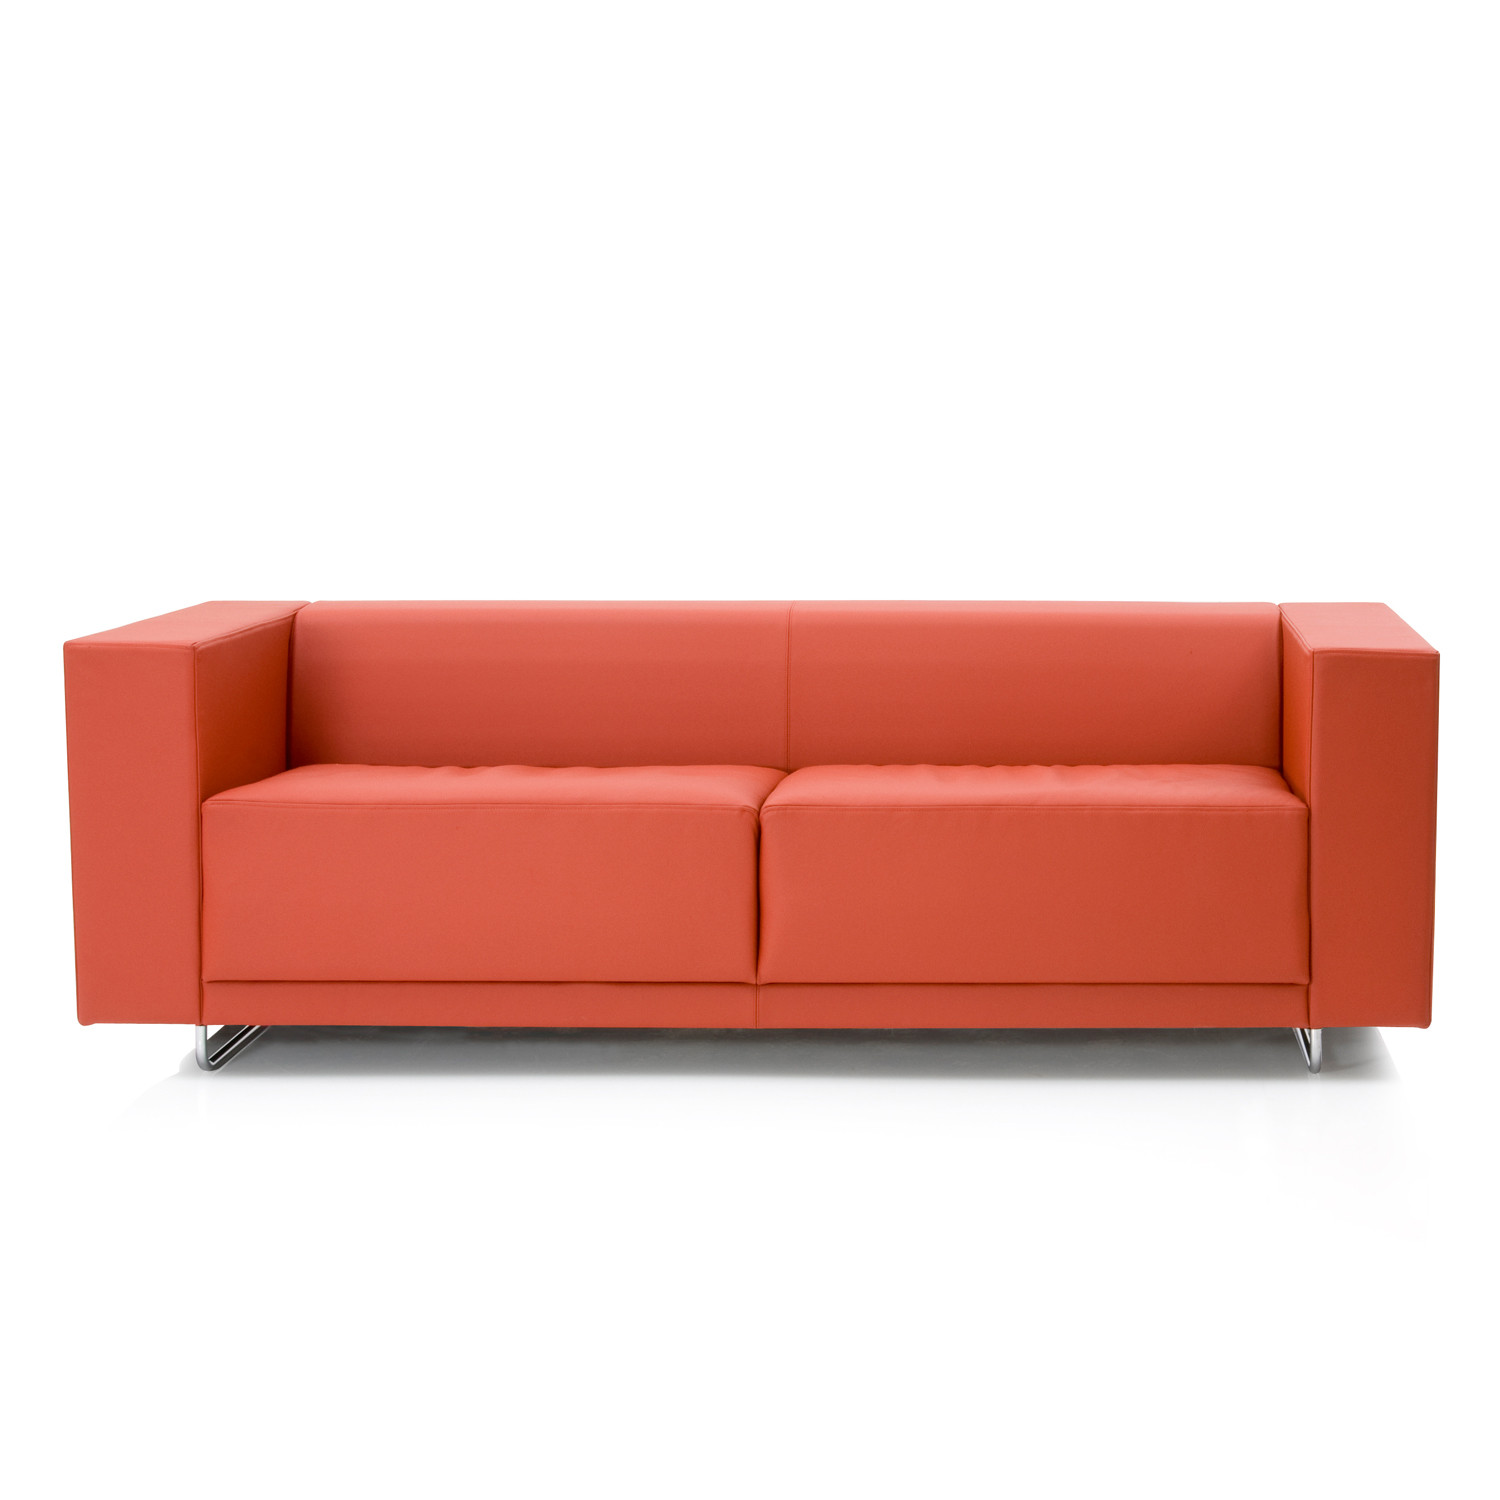 Aston 2 seater sofa by Orangebox